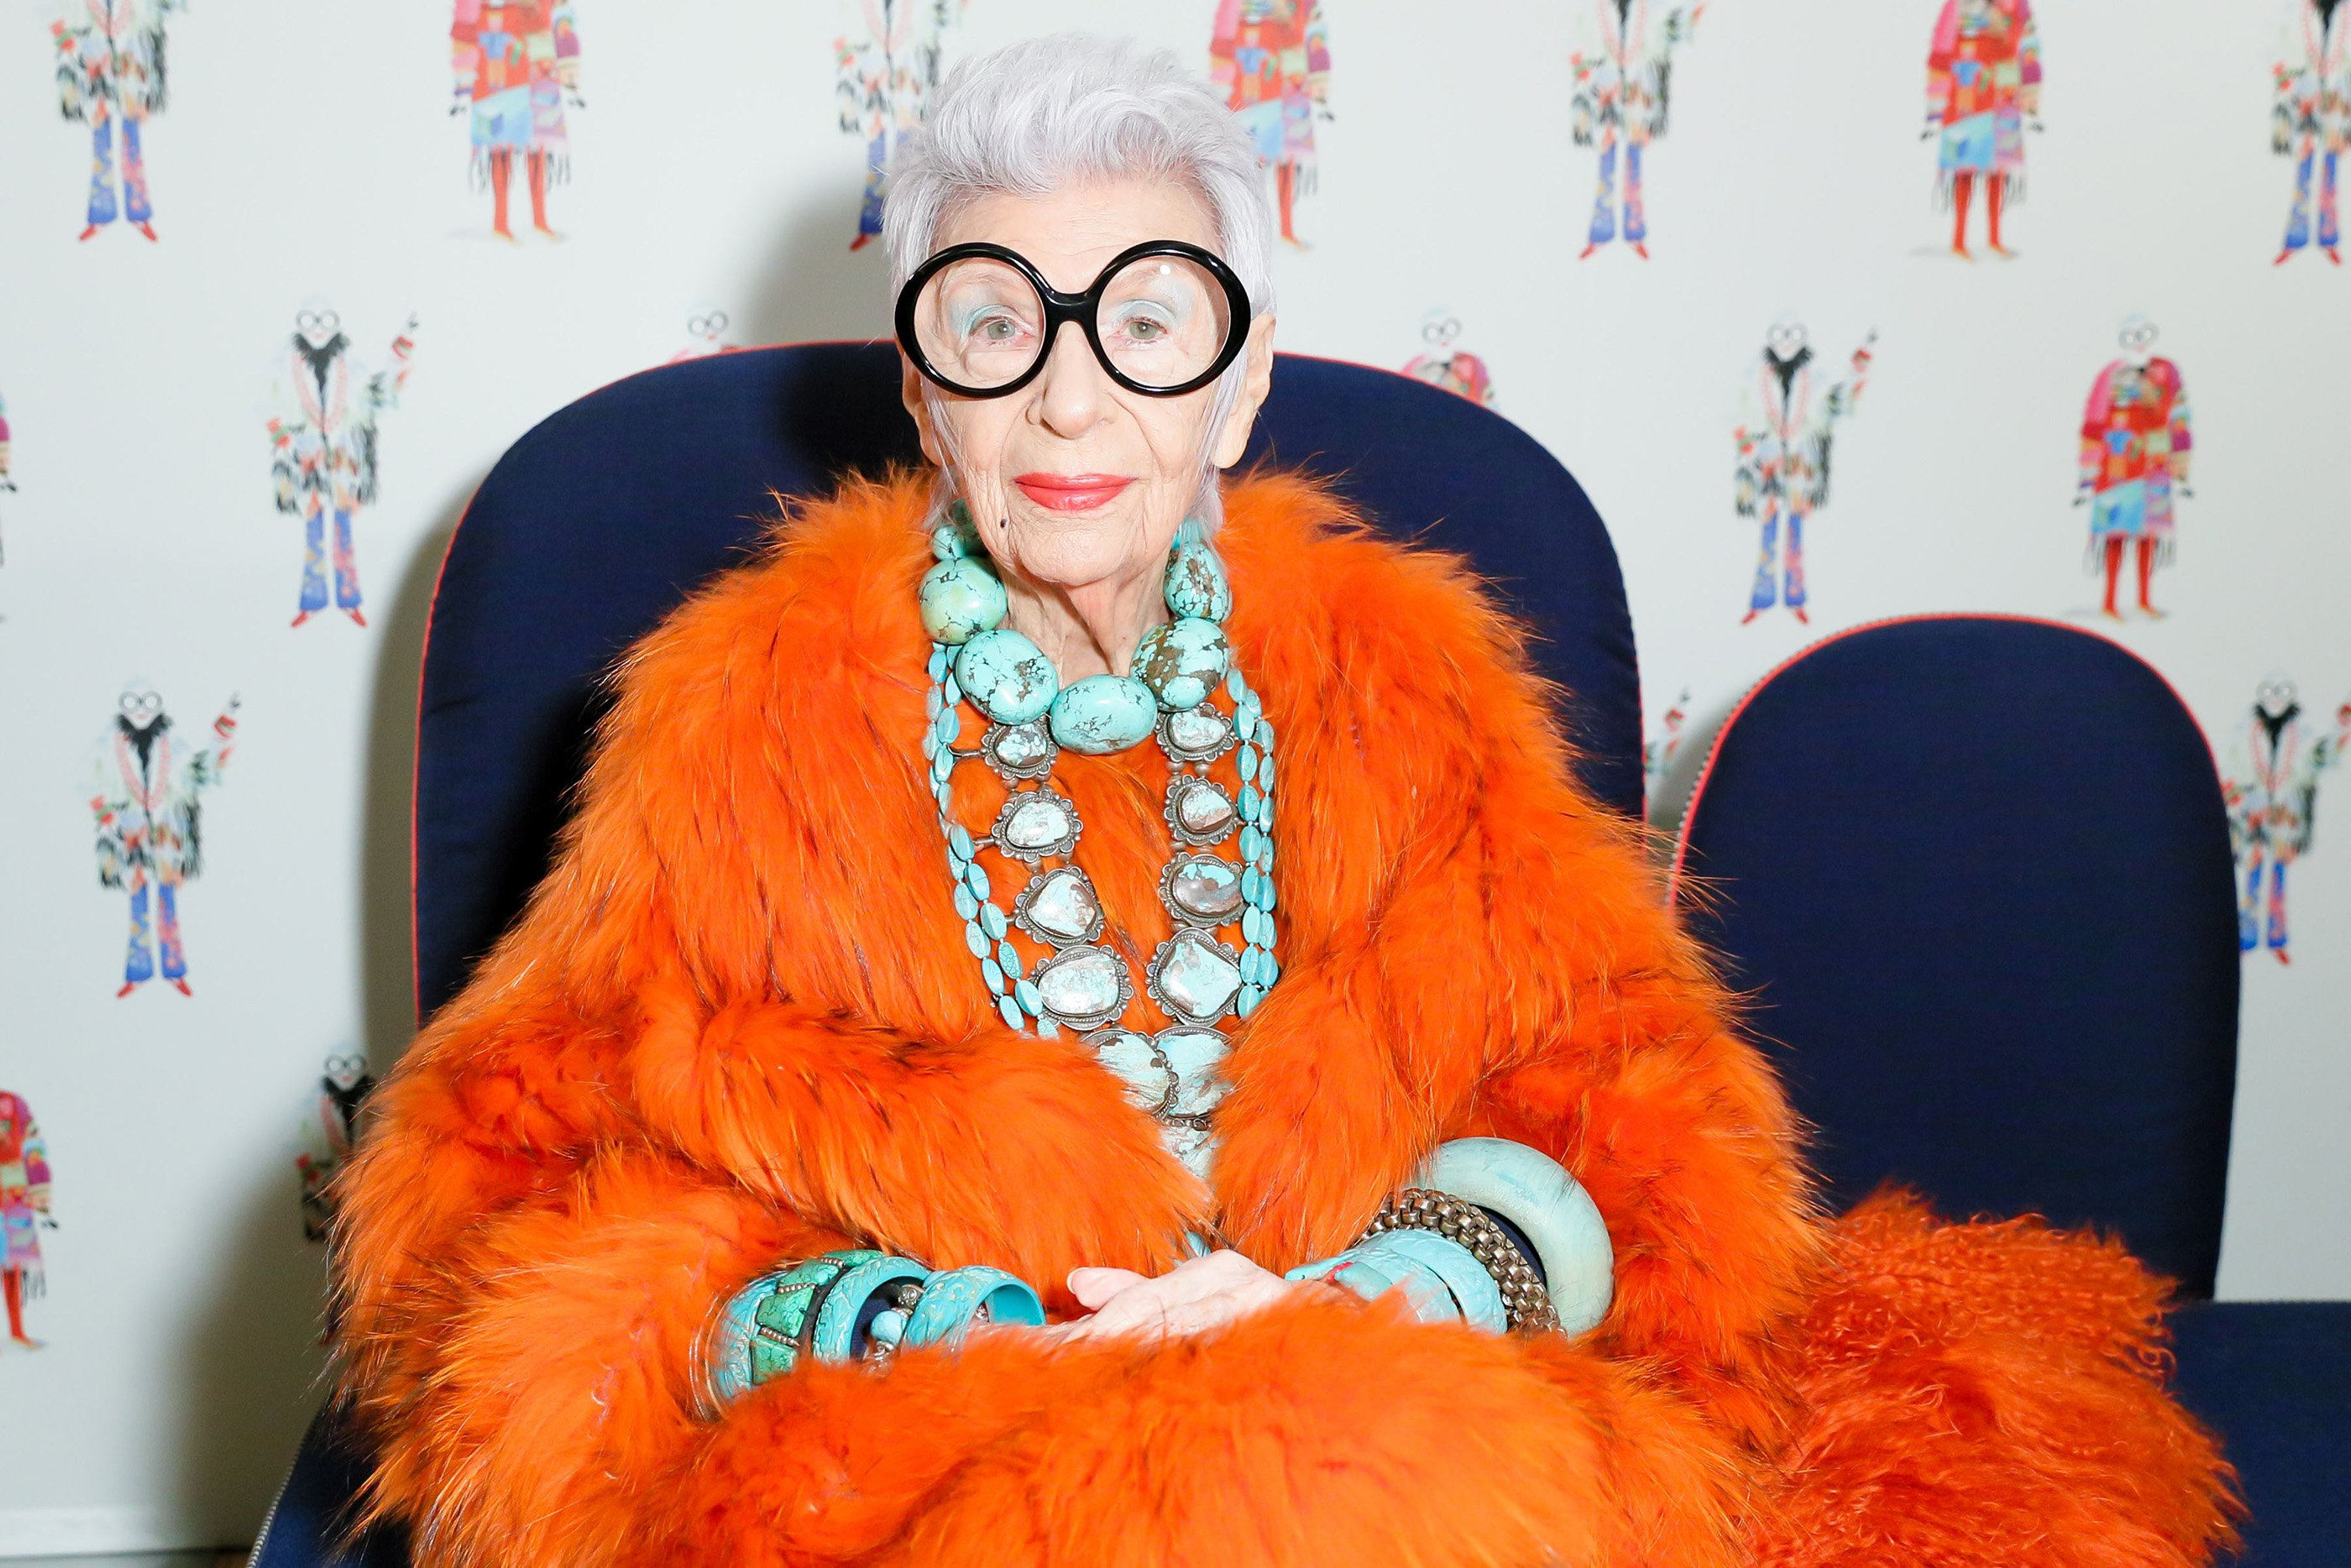 180423-iris-apfel-featured.jpg